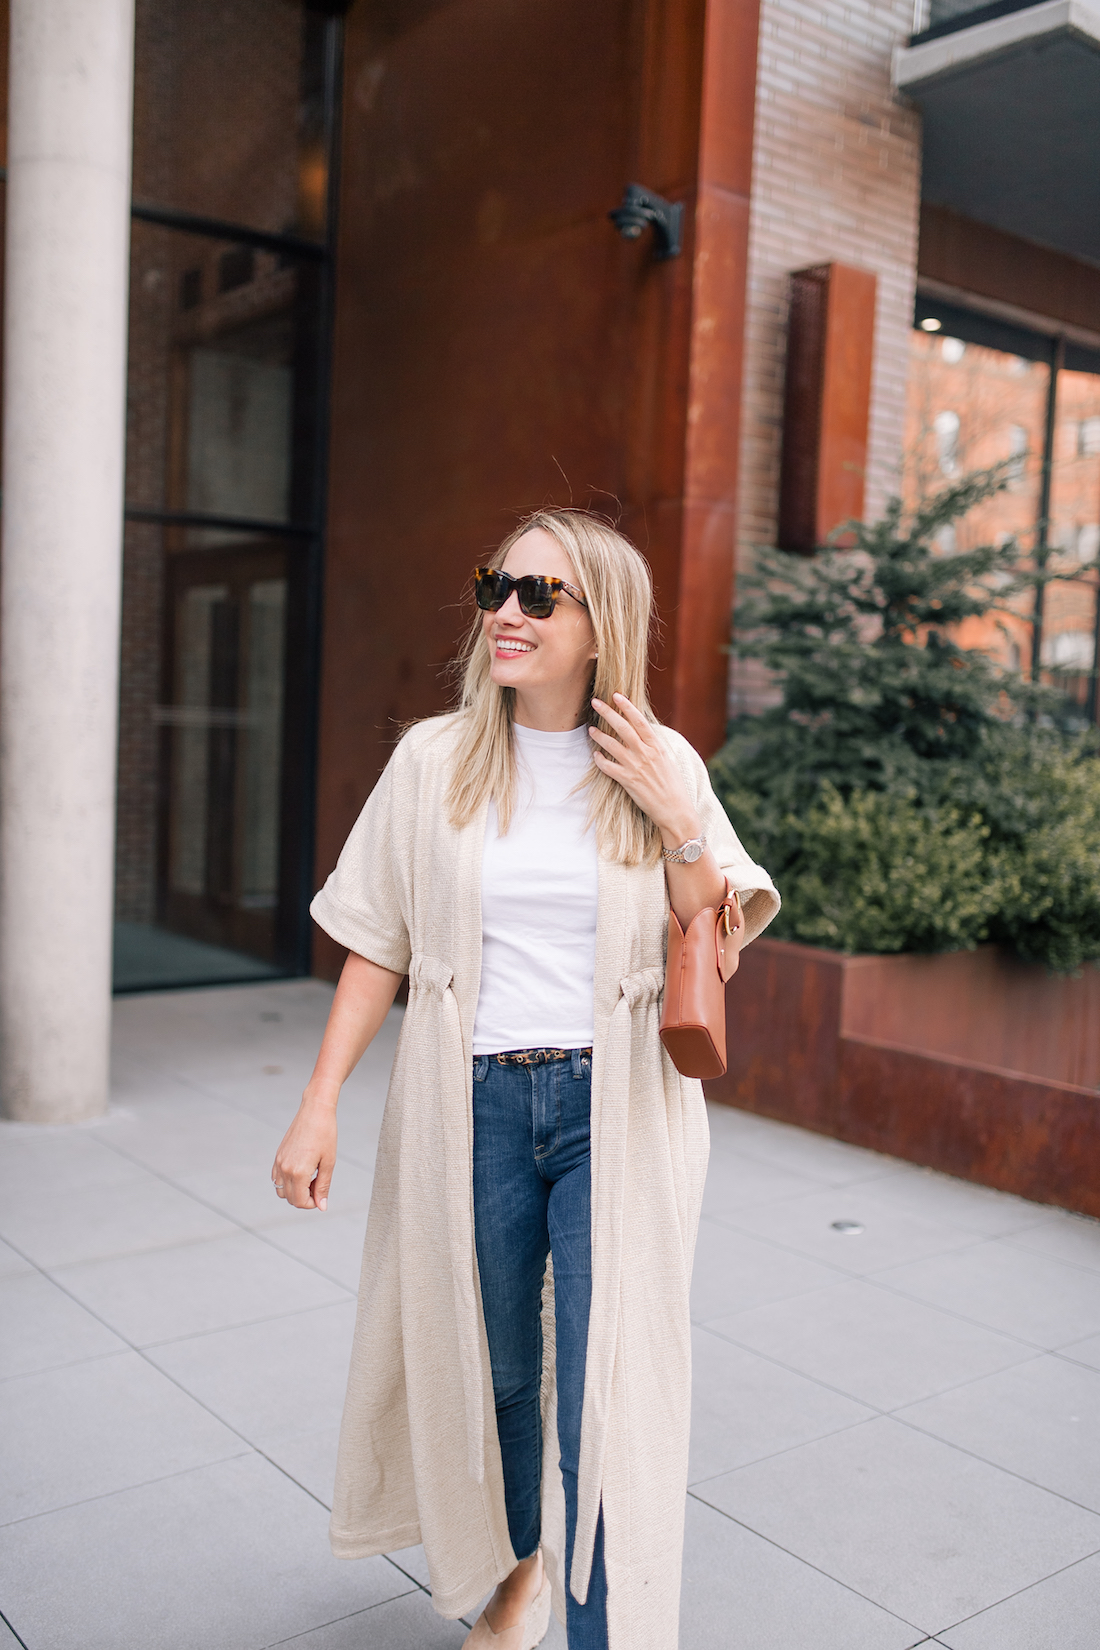 Saint Holiday robe, white tee and jeans outfit